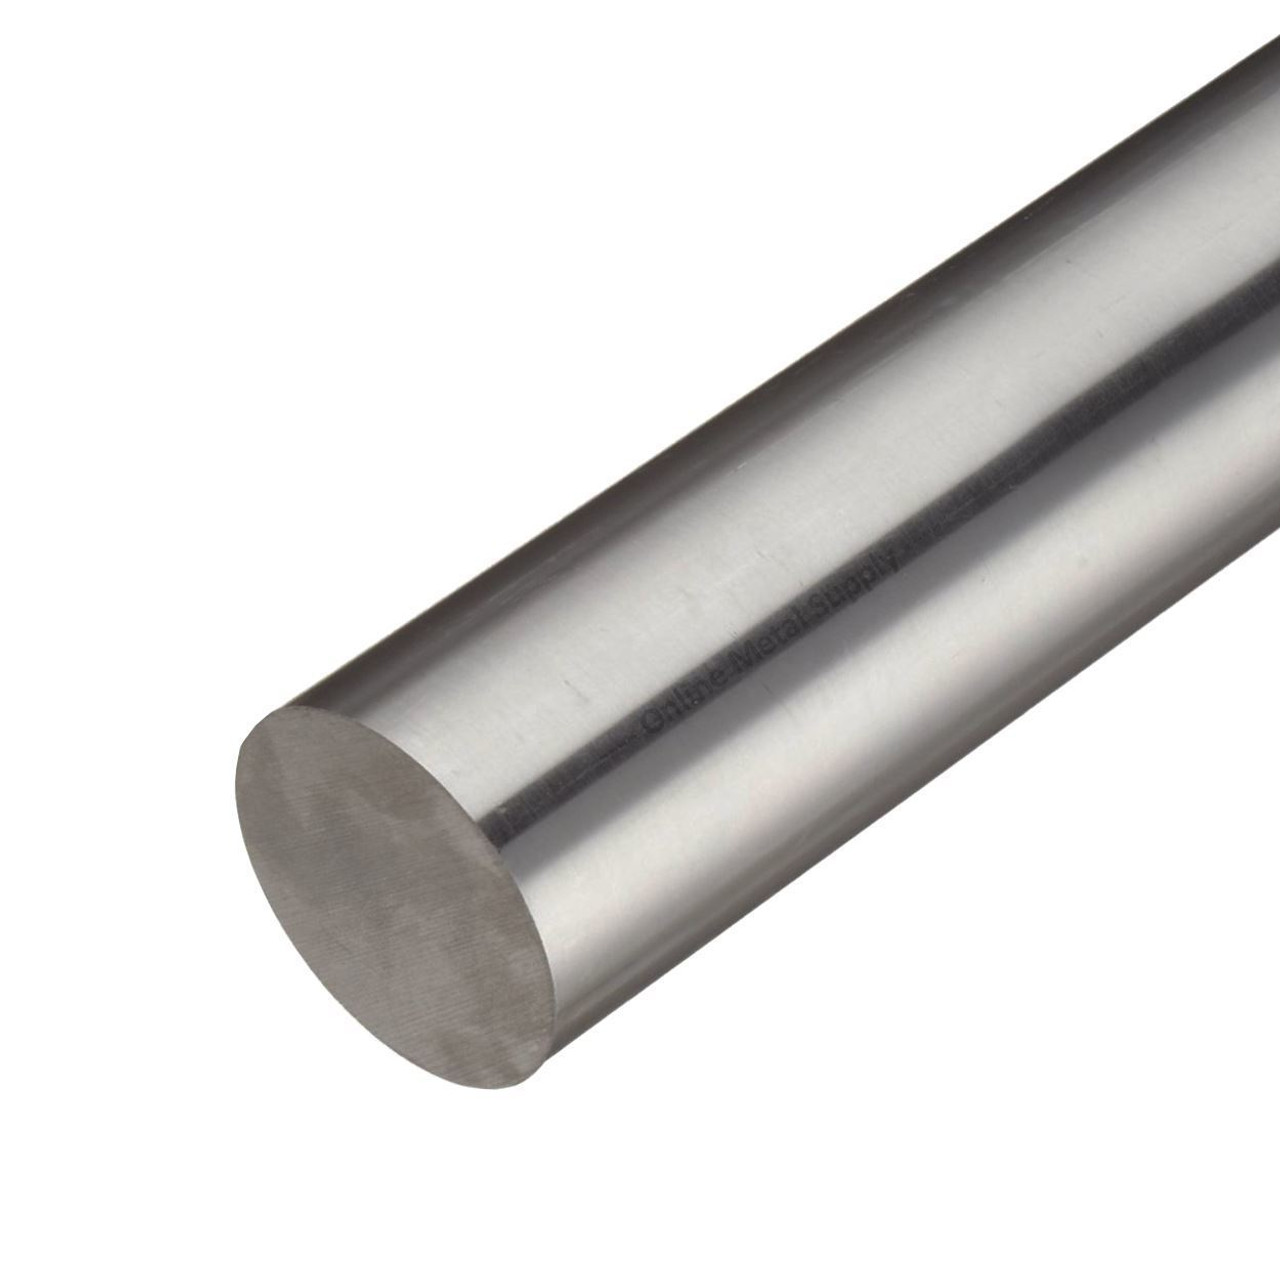 17-4 Stainless Steel Round Rod, 3.000 (3 inch) x 6 inches